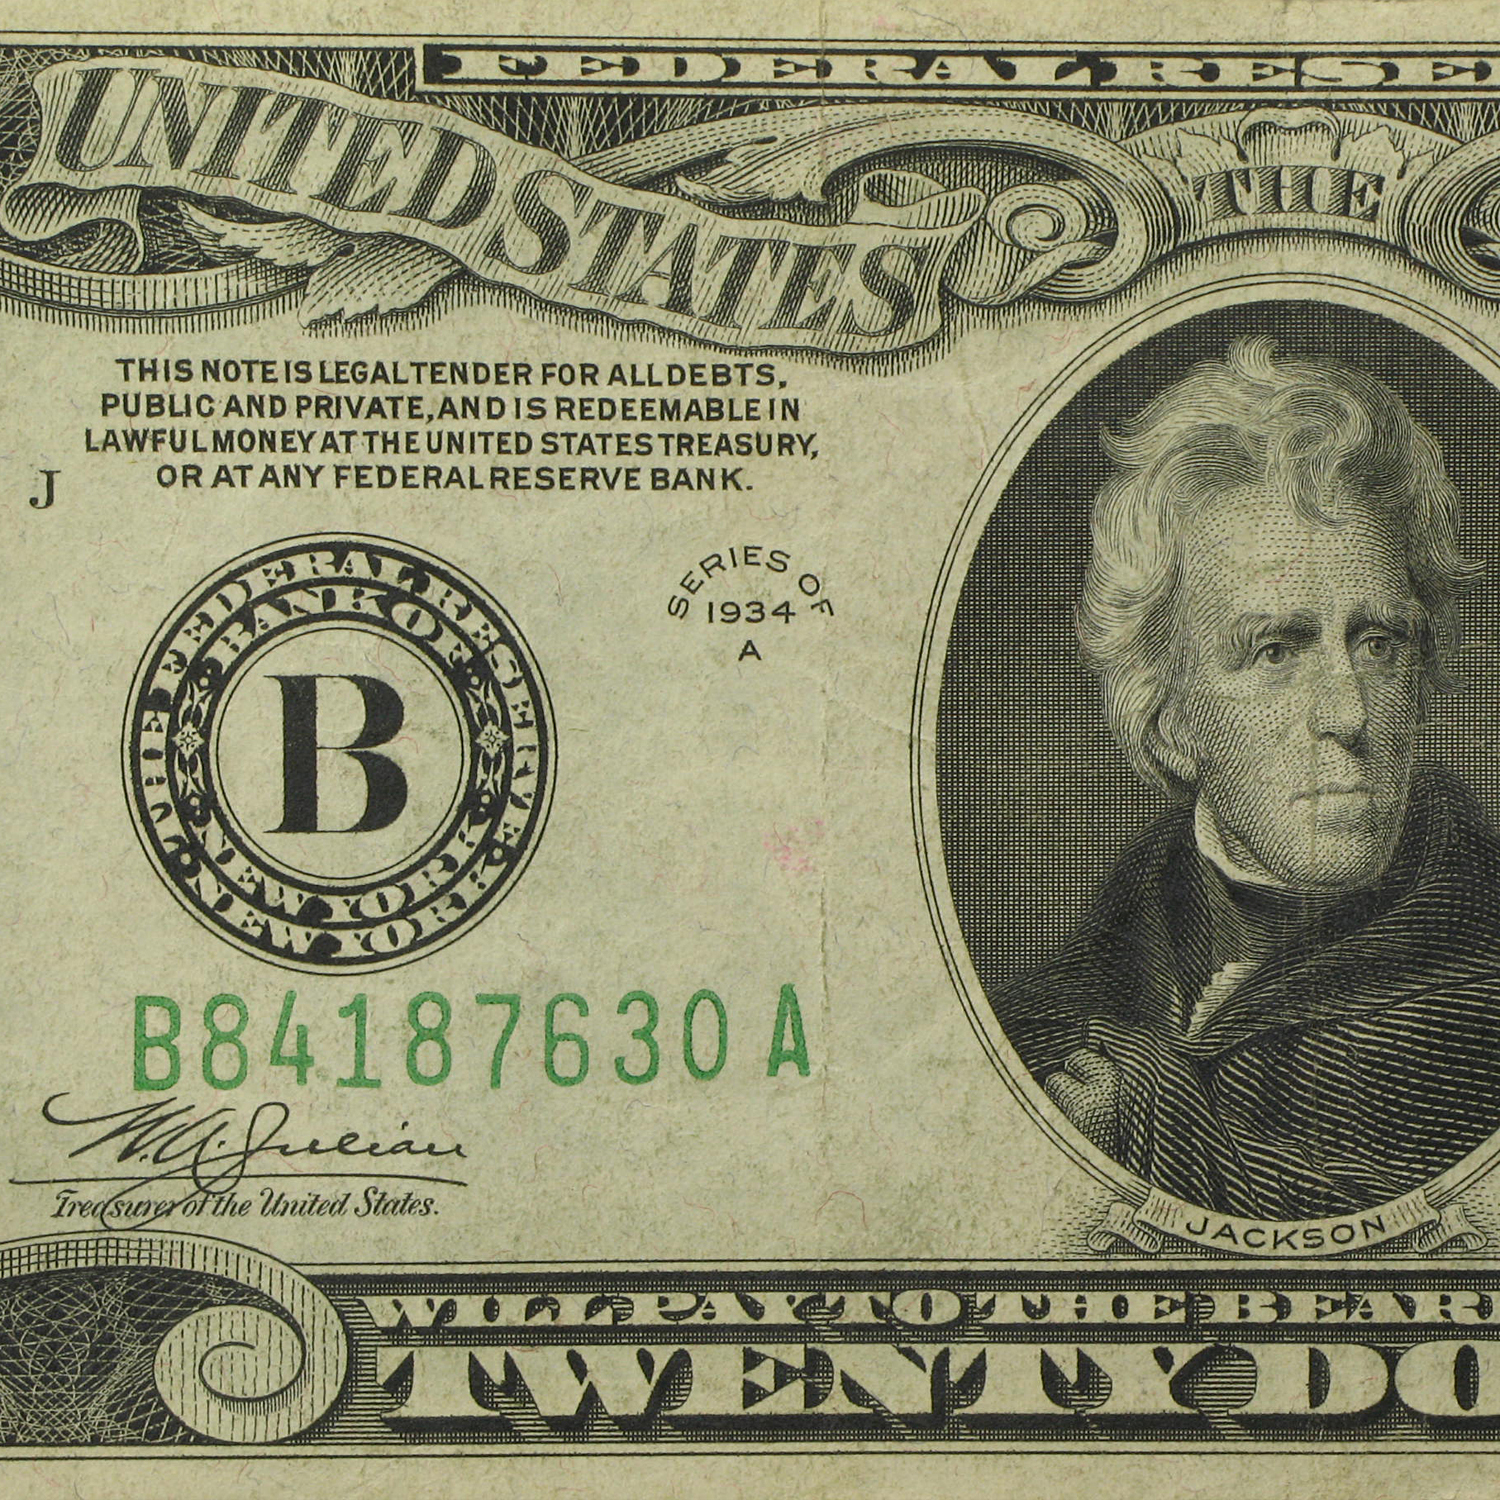 1934-A (B-New York) $20 FRN (Very Fine)